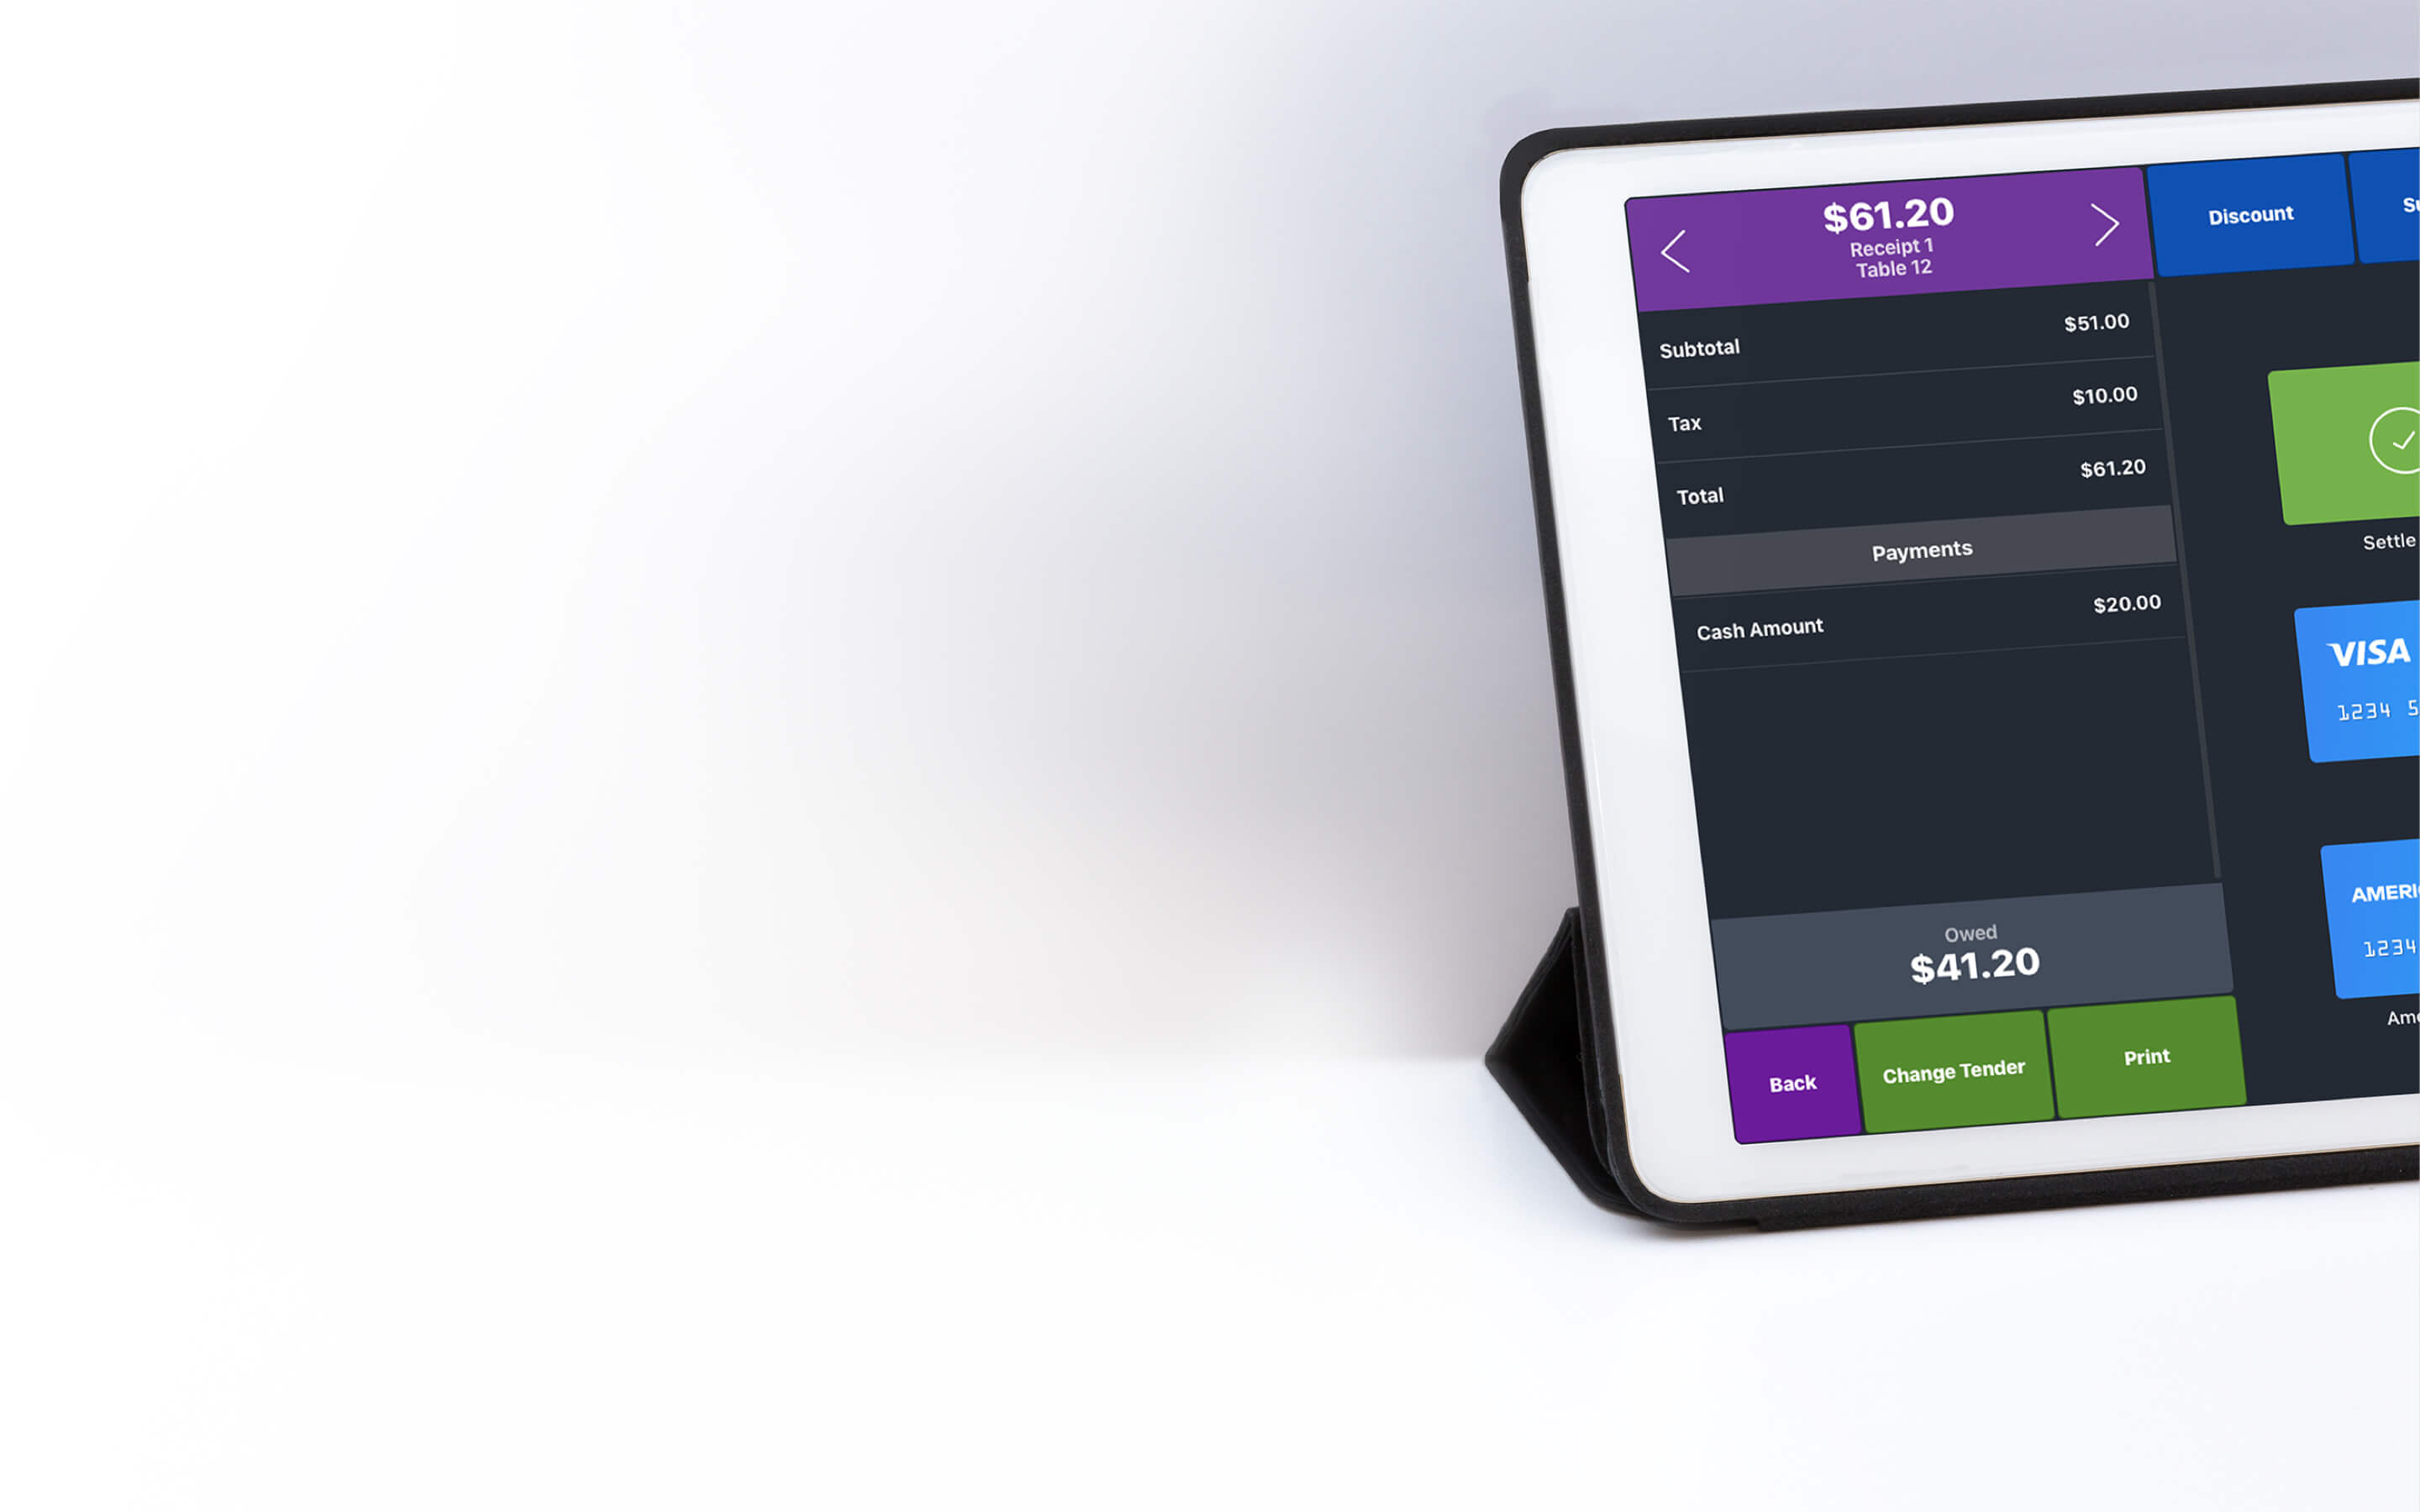 Image of iPad displaying IsleHelp Point of Sale System